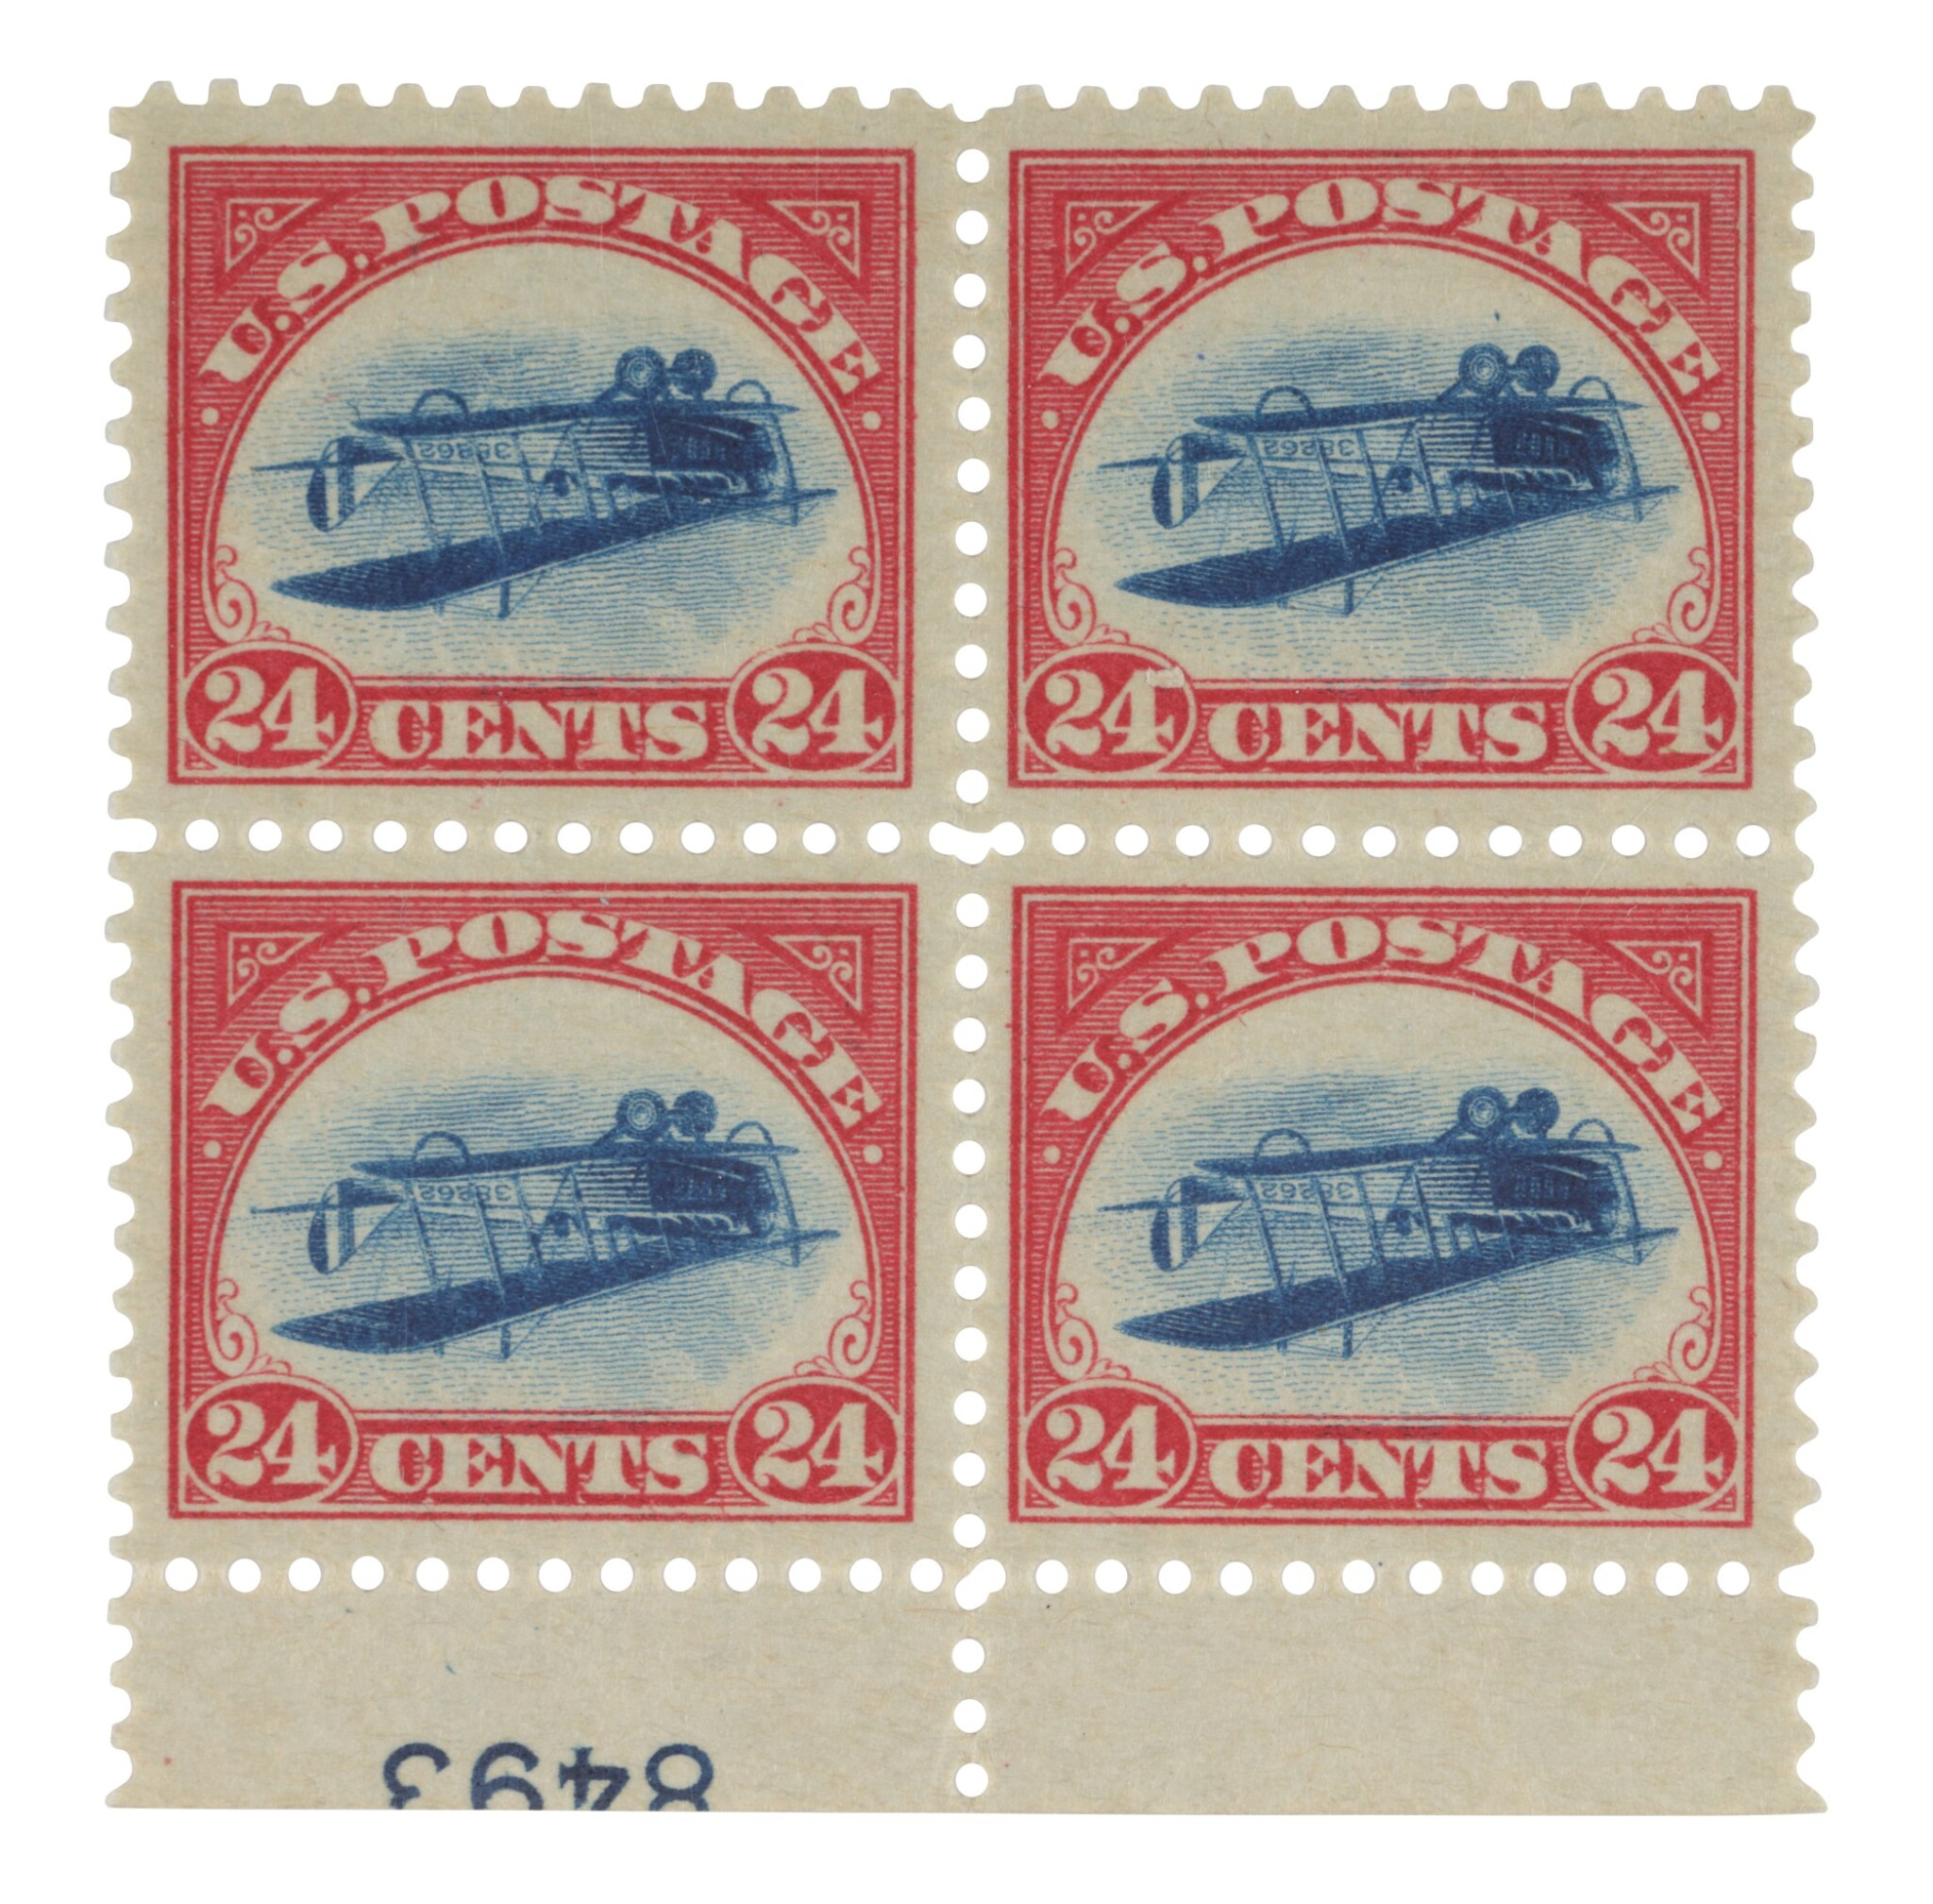 View full screen - View 1 of Lot 2. The Inverted Jenny Plate Block.